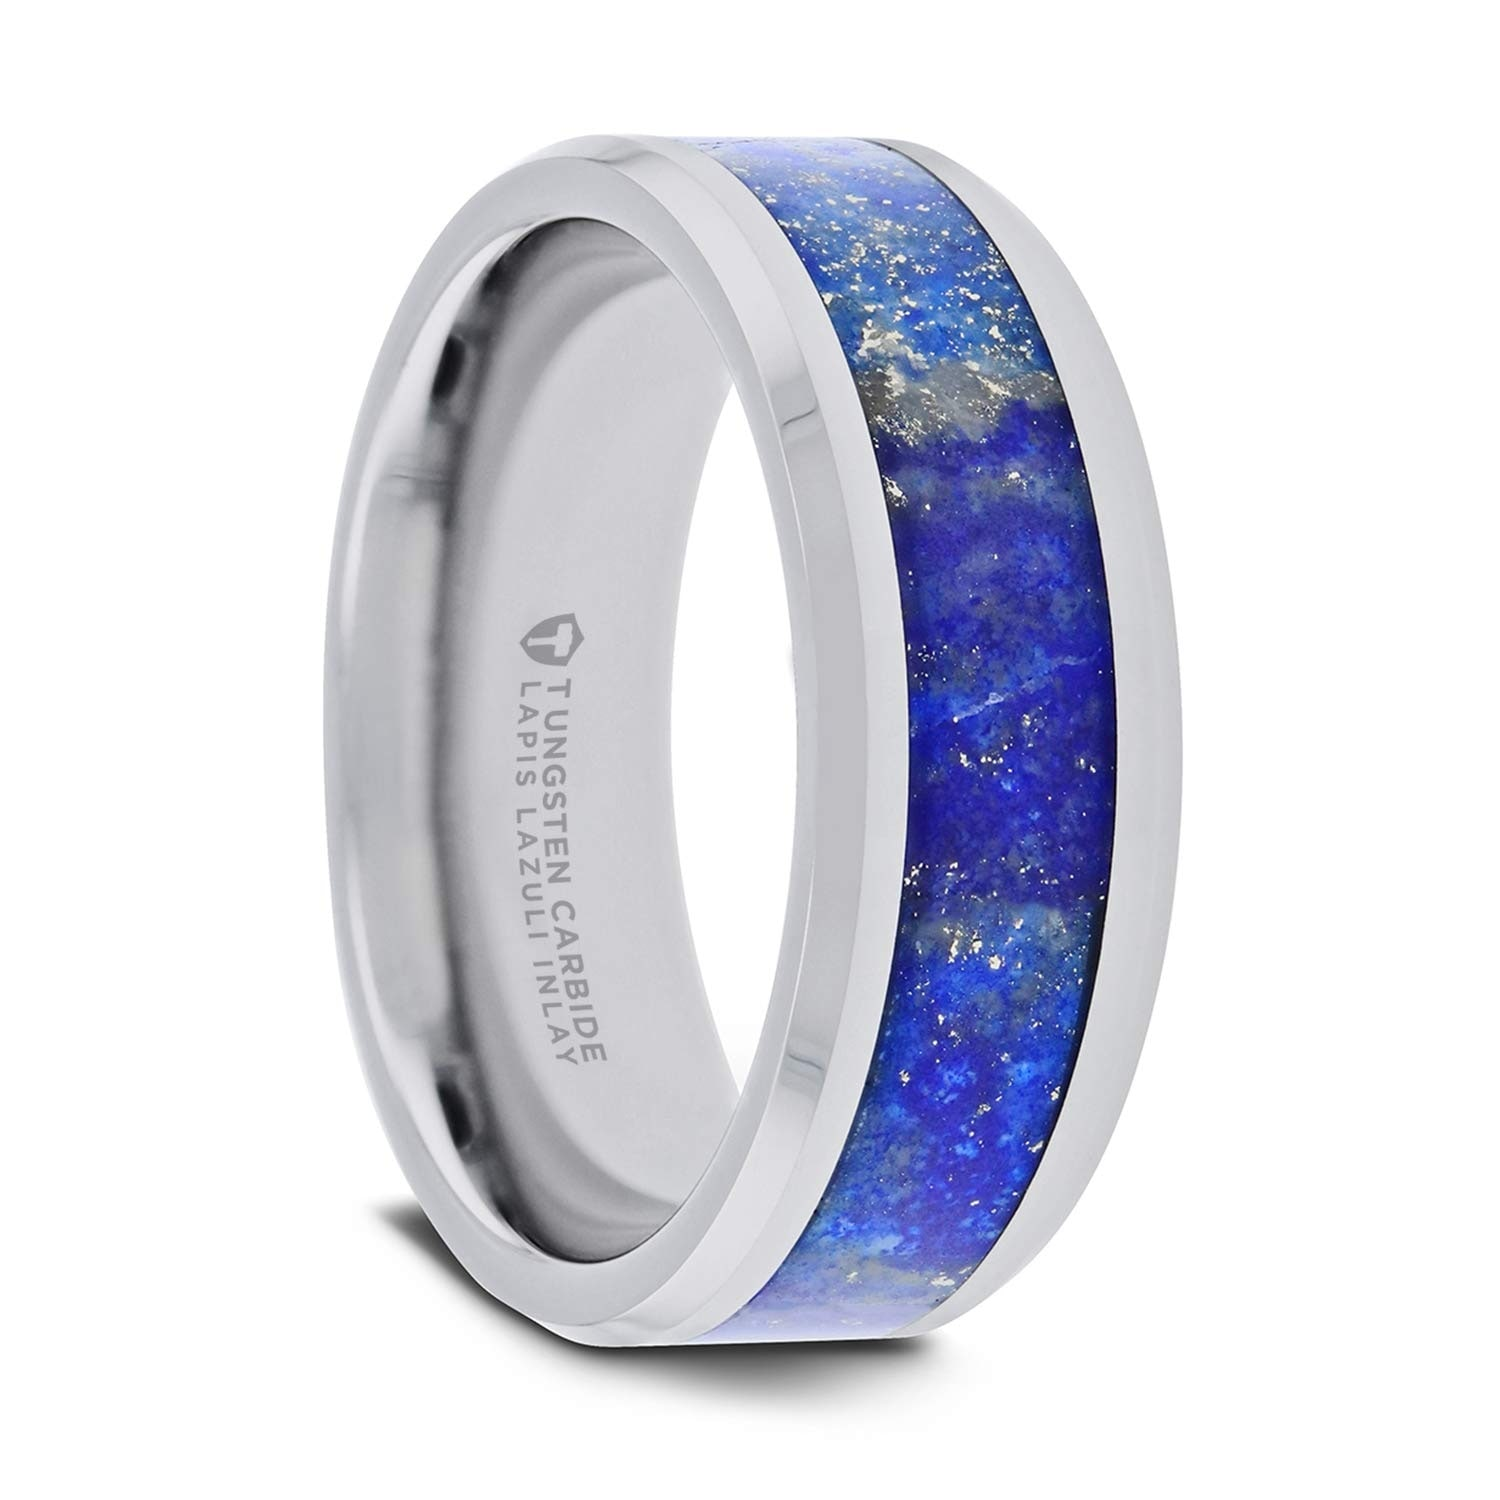 Tungsten Wedding Rings.Thorsten Osias Tungsten Rings For Men Tungsten Wedding Ring Band With Blue Lapis Inlay And Polished Beveled Edges 8mm